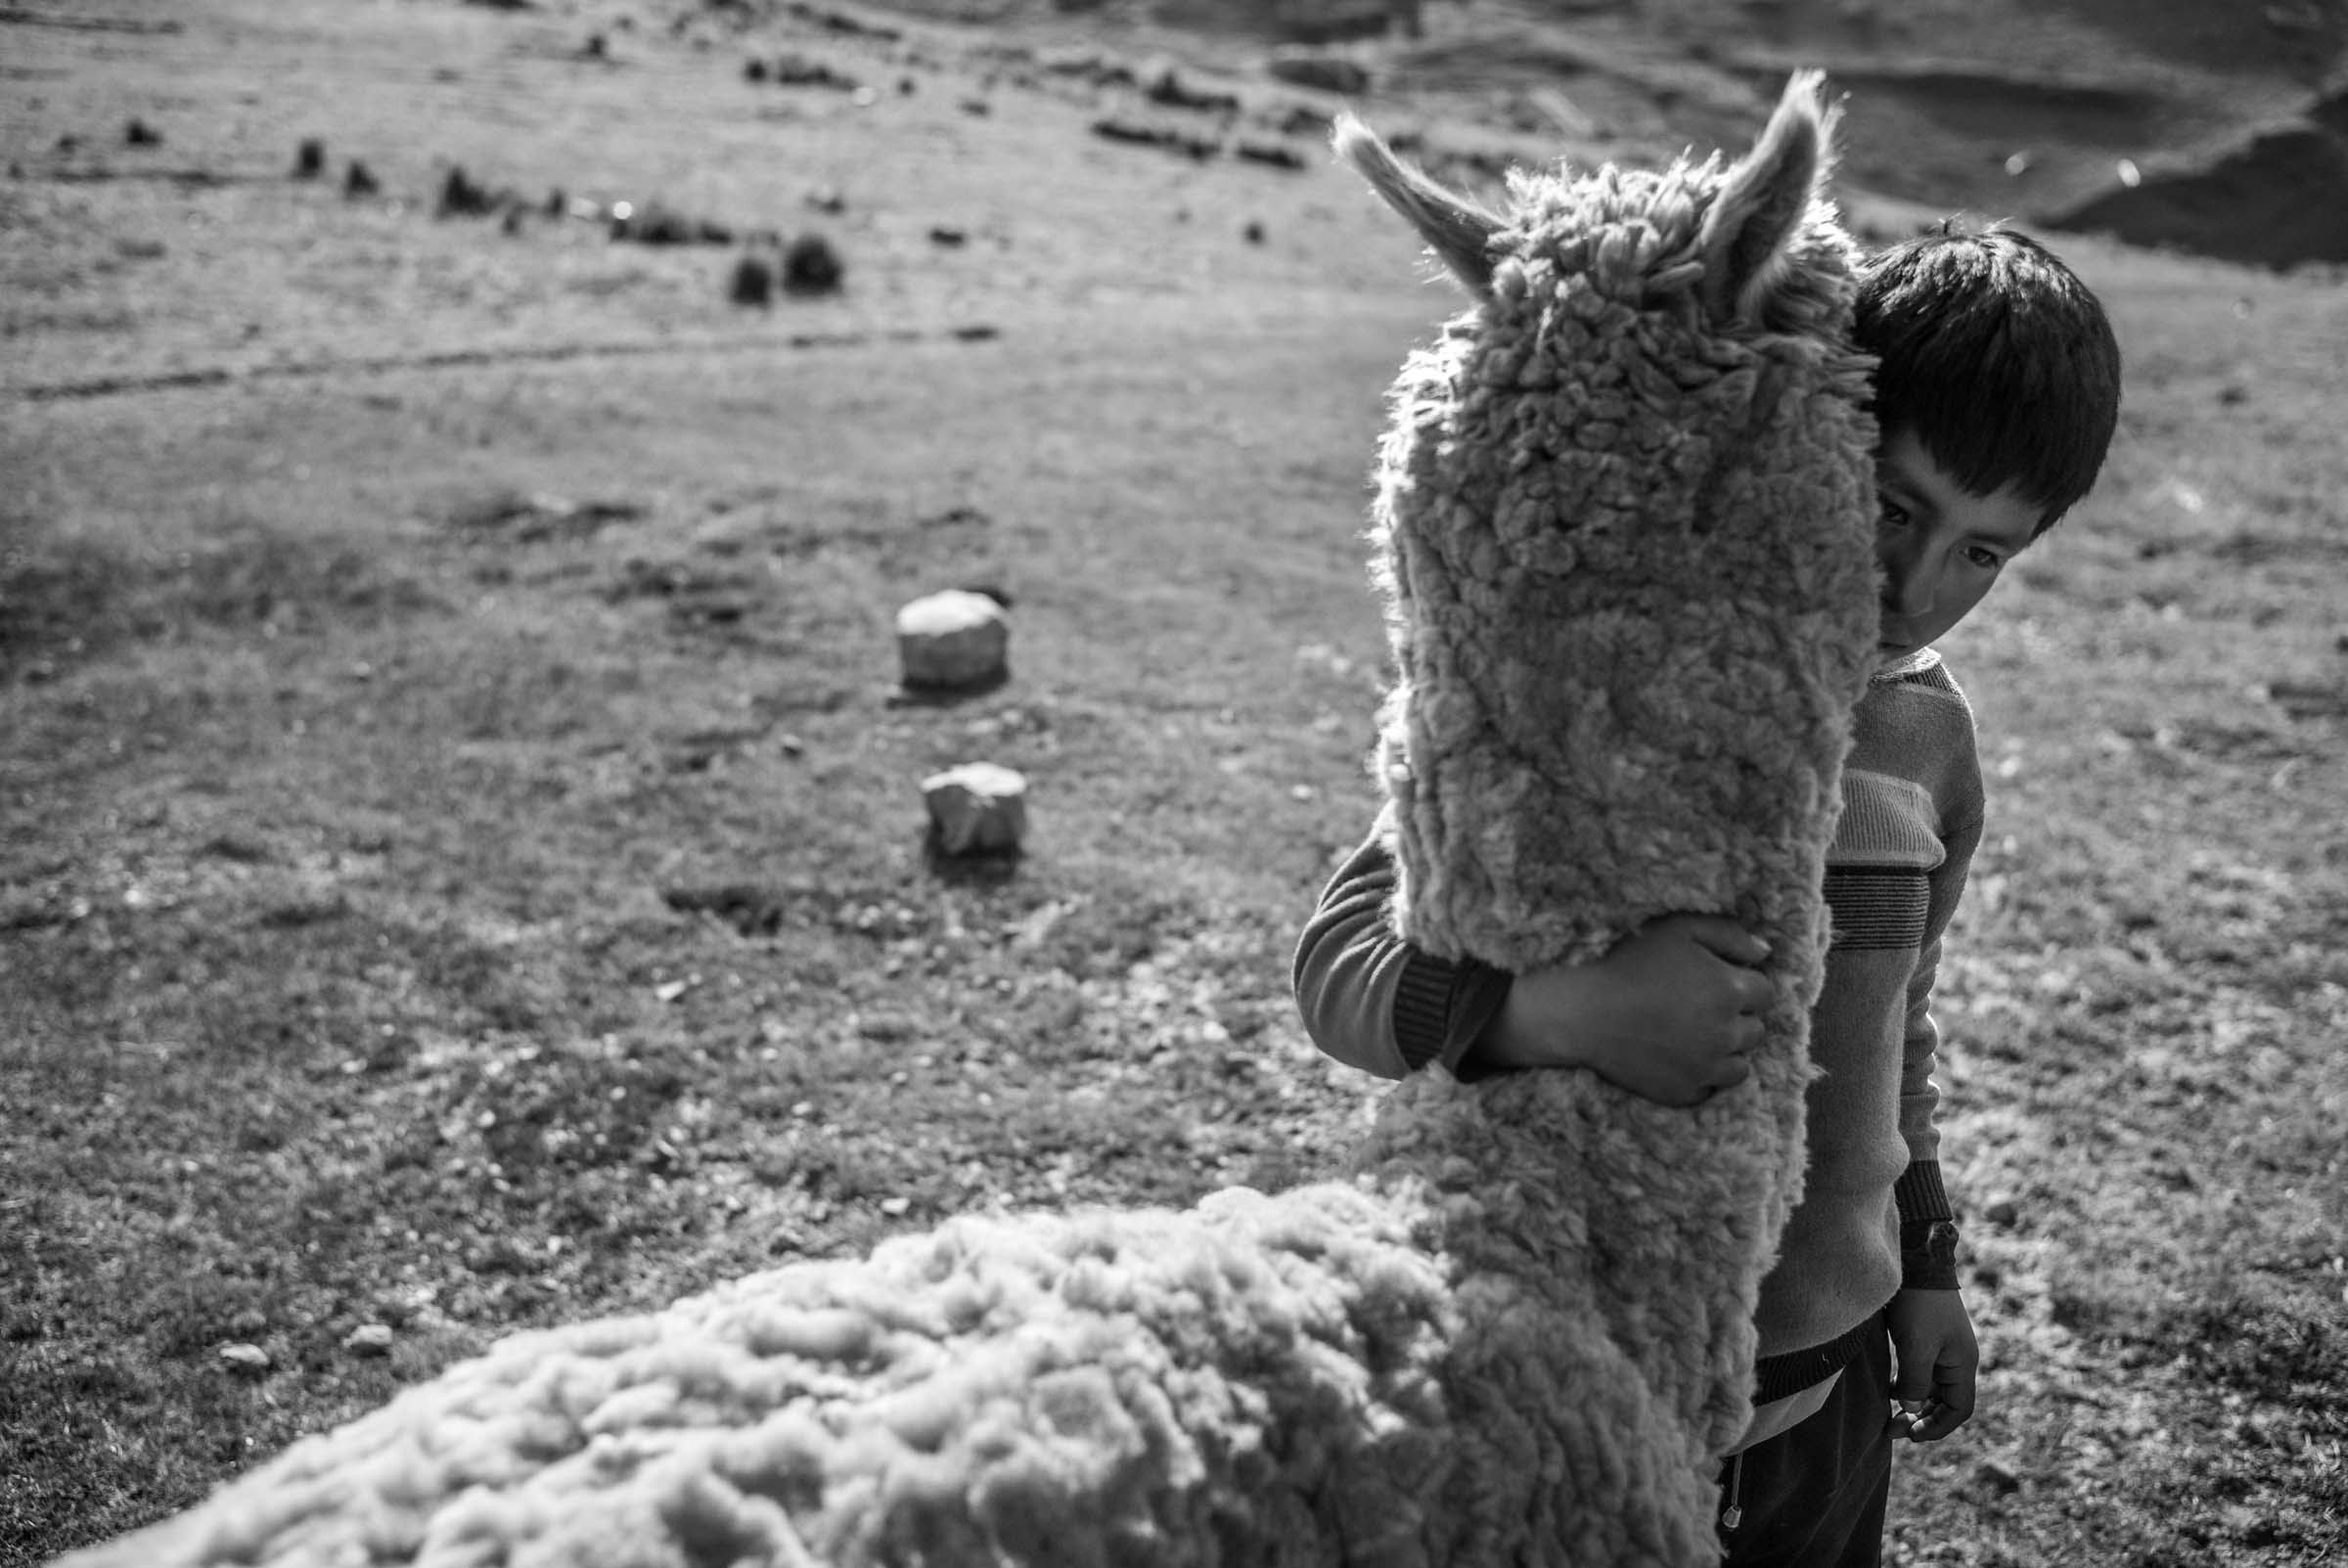 An intimate moment between a child and a llama, speaks to how close the people of the Sacred Valley live to the land and their animals. (Alessandro Cinque/GroundTruth)